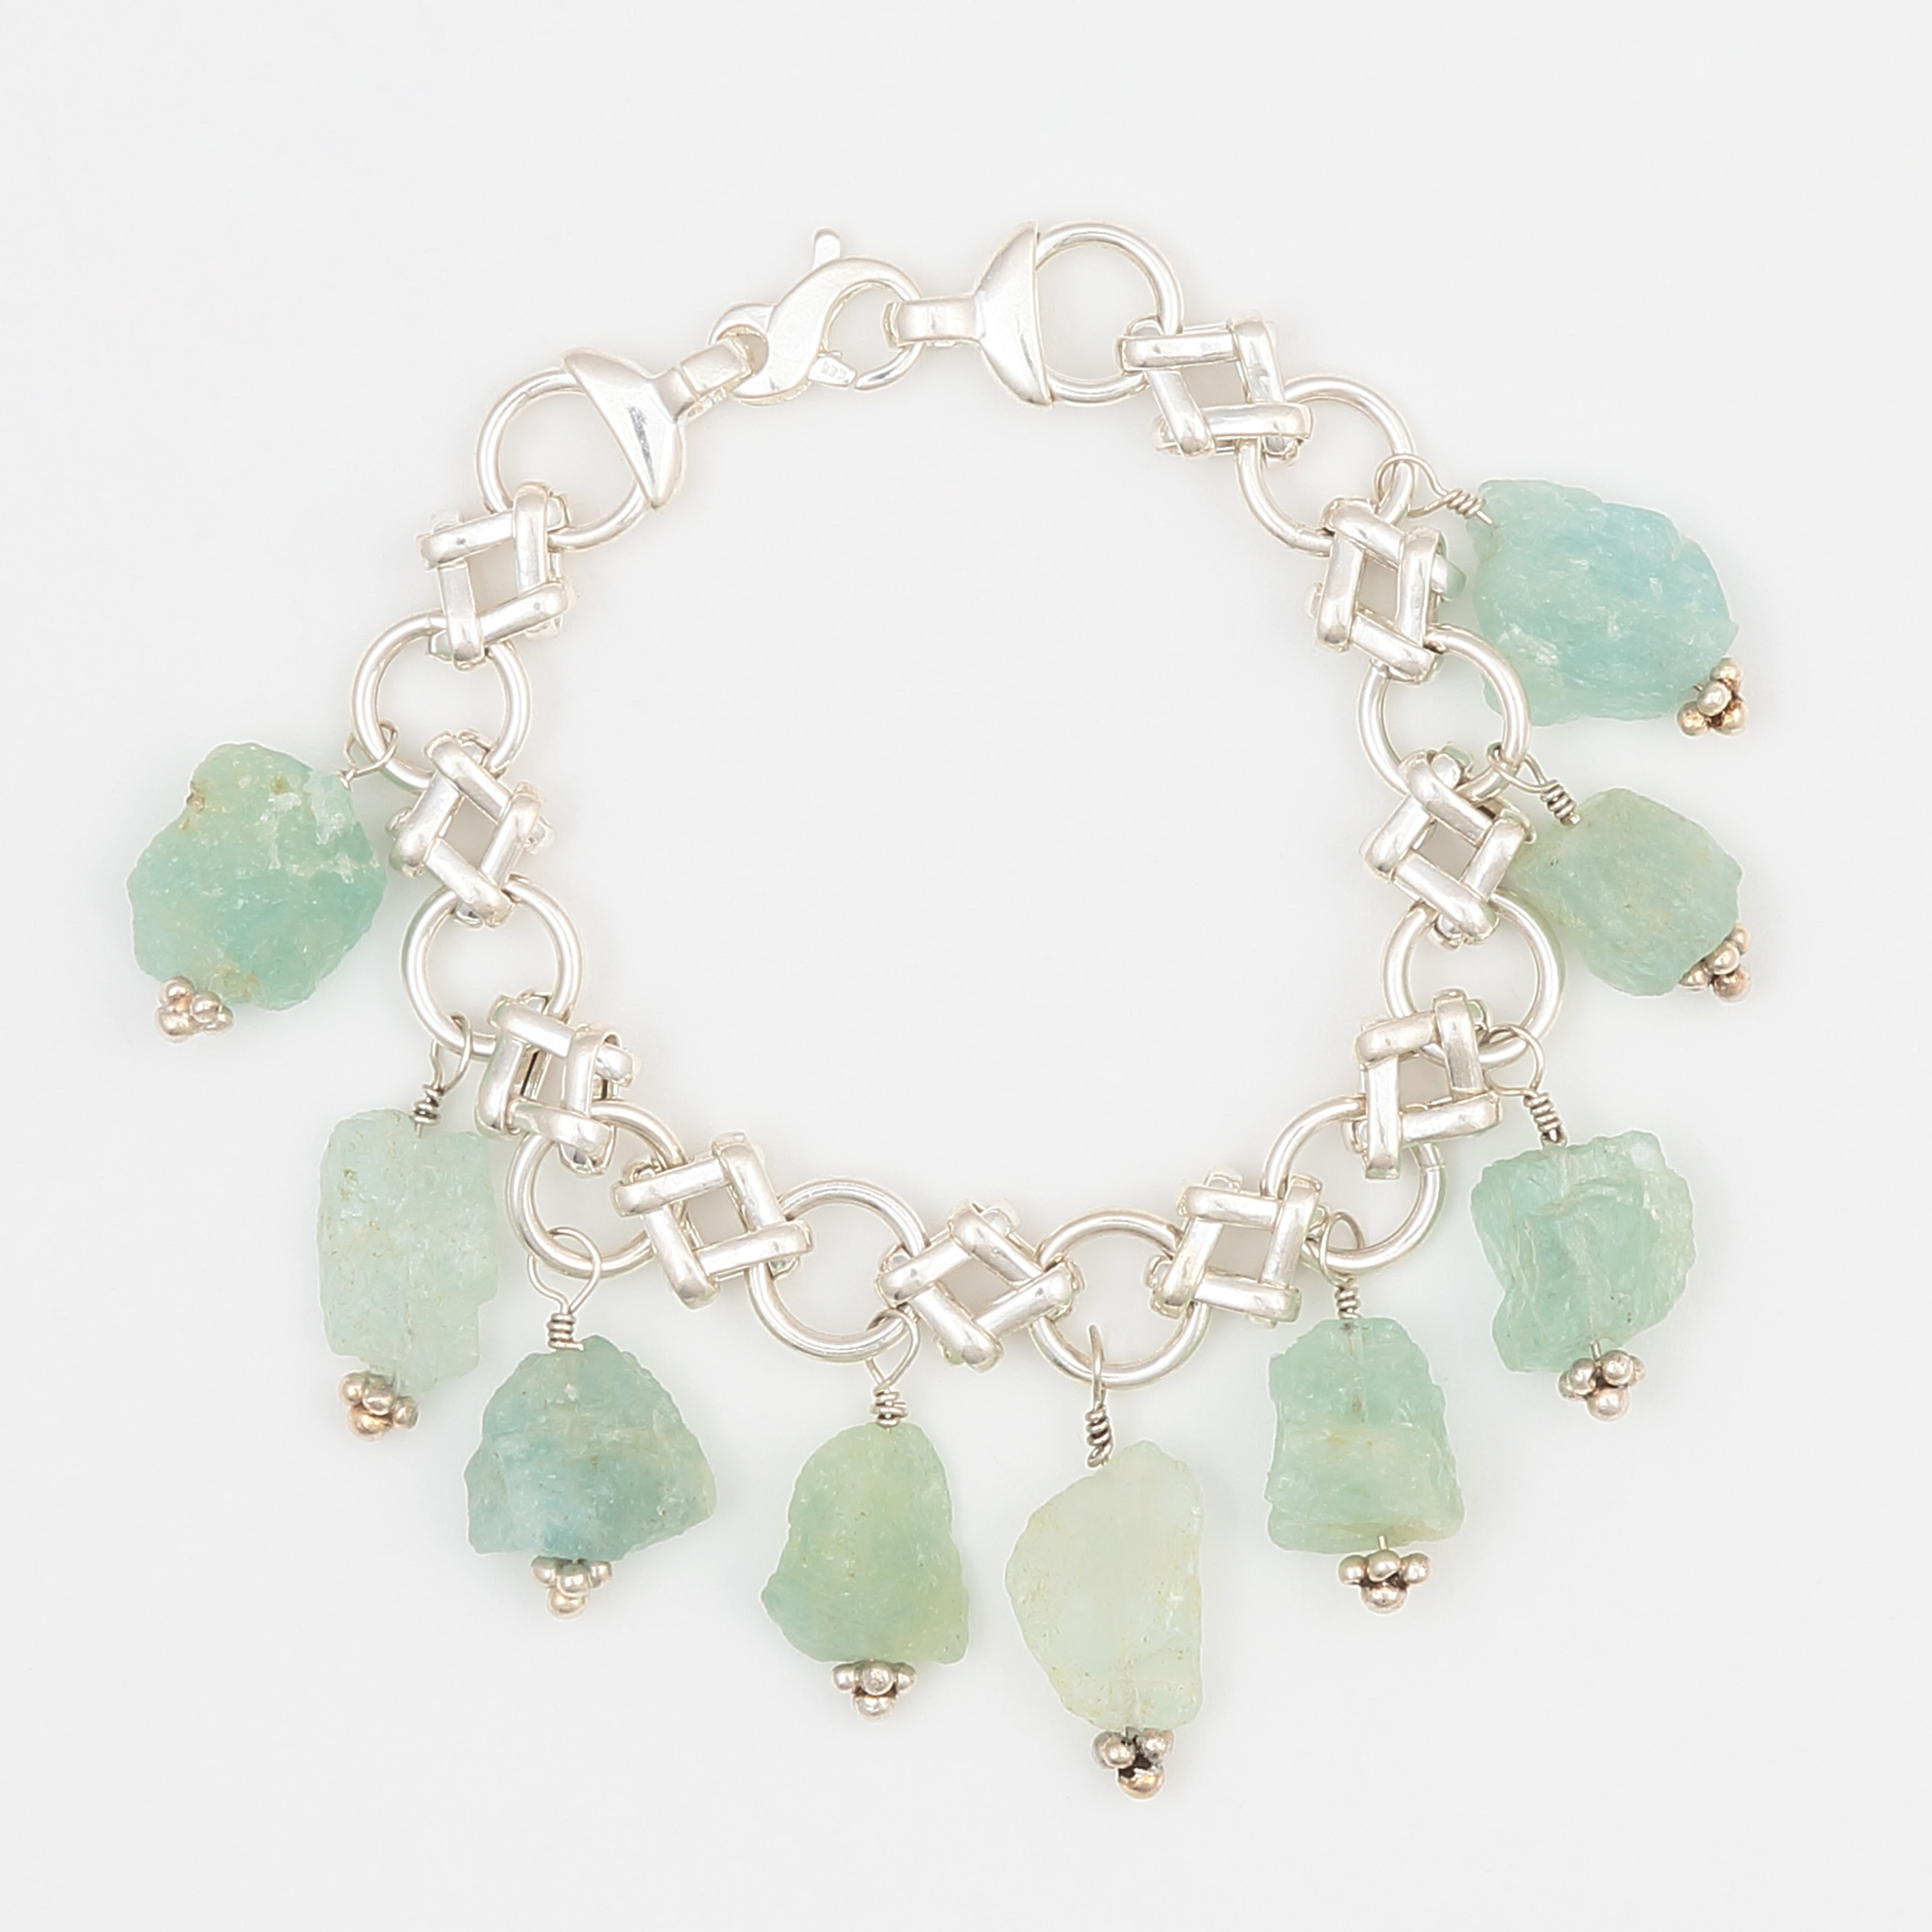 OM BRACELET- semiprecious blue green aquamarine natural gemstones on a unique sterling silver bracelet